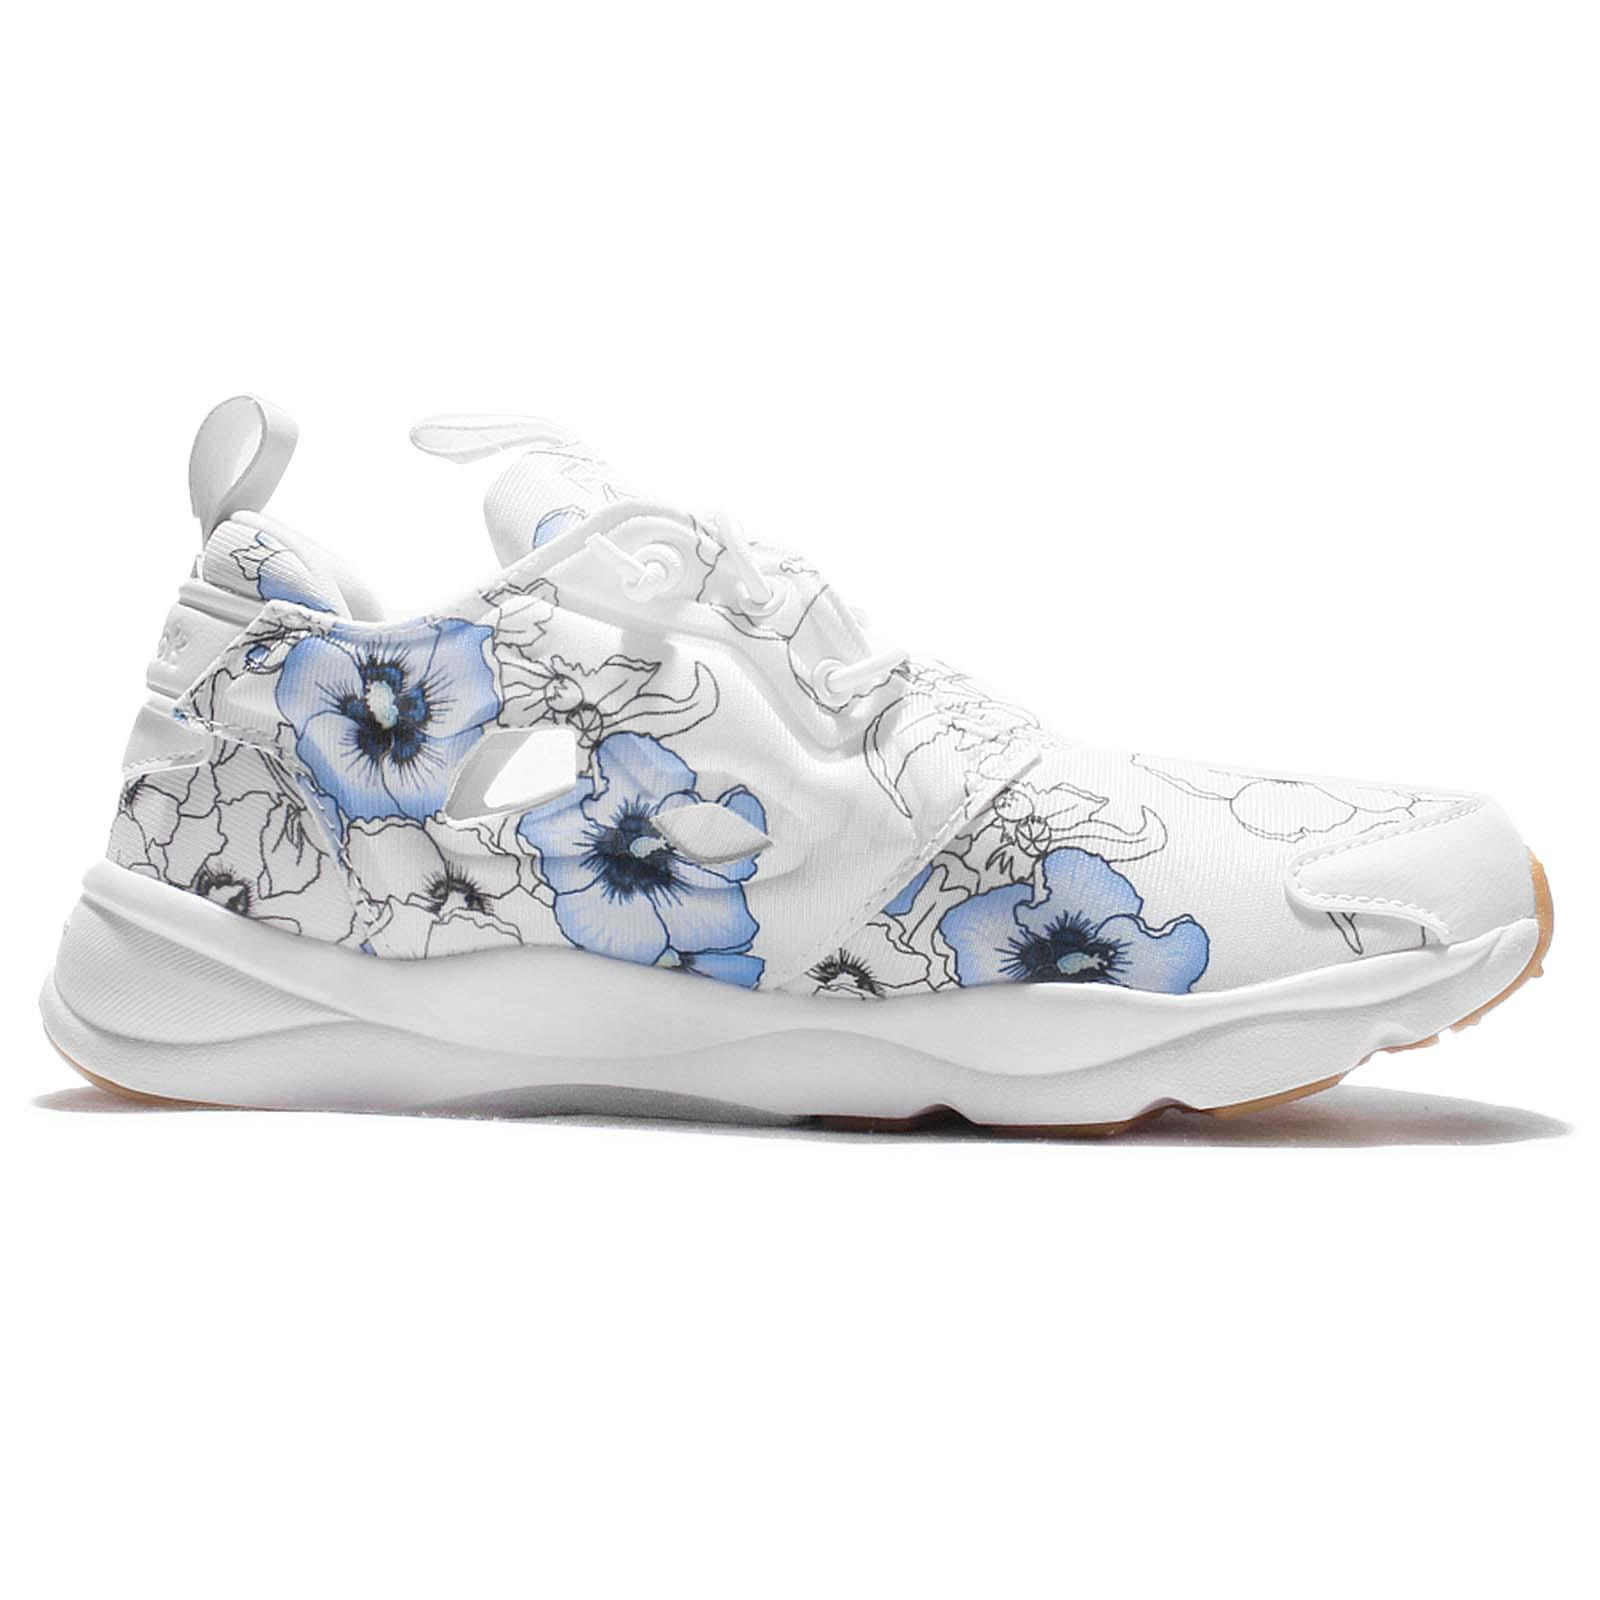 3d1bf47d5ae Buy reebok floral shoes   OFF62% Discounted